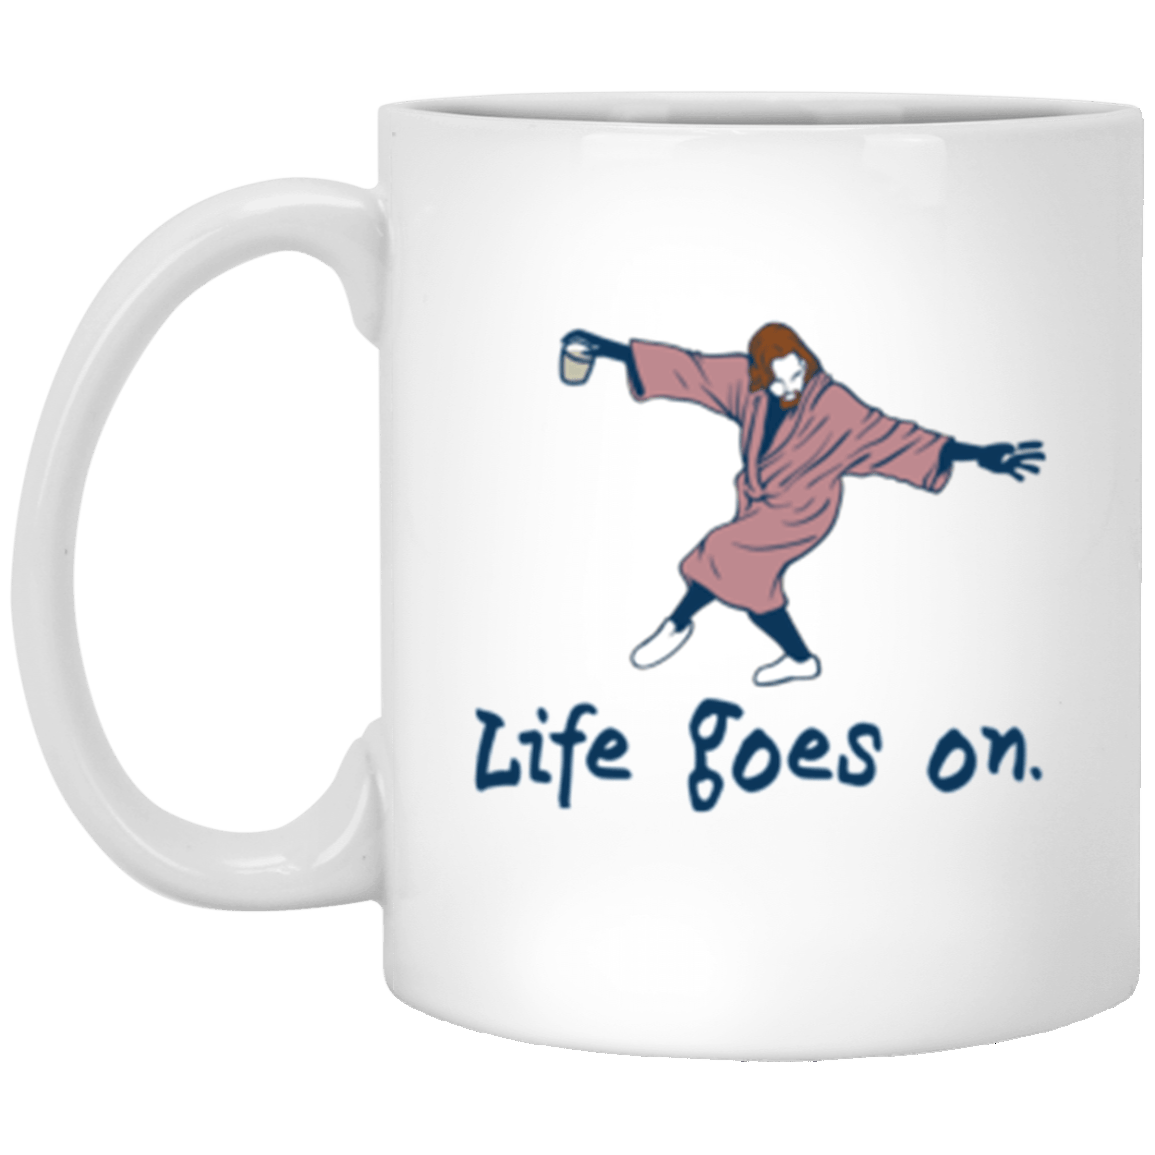 Life Goes On White Mug 11oz (2-sided)